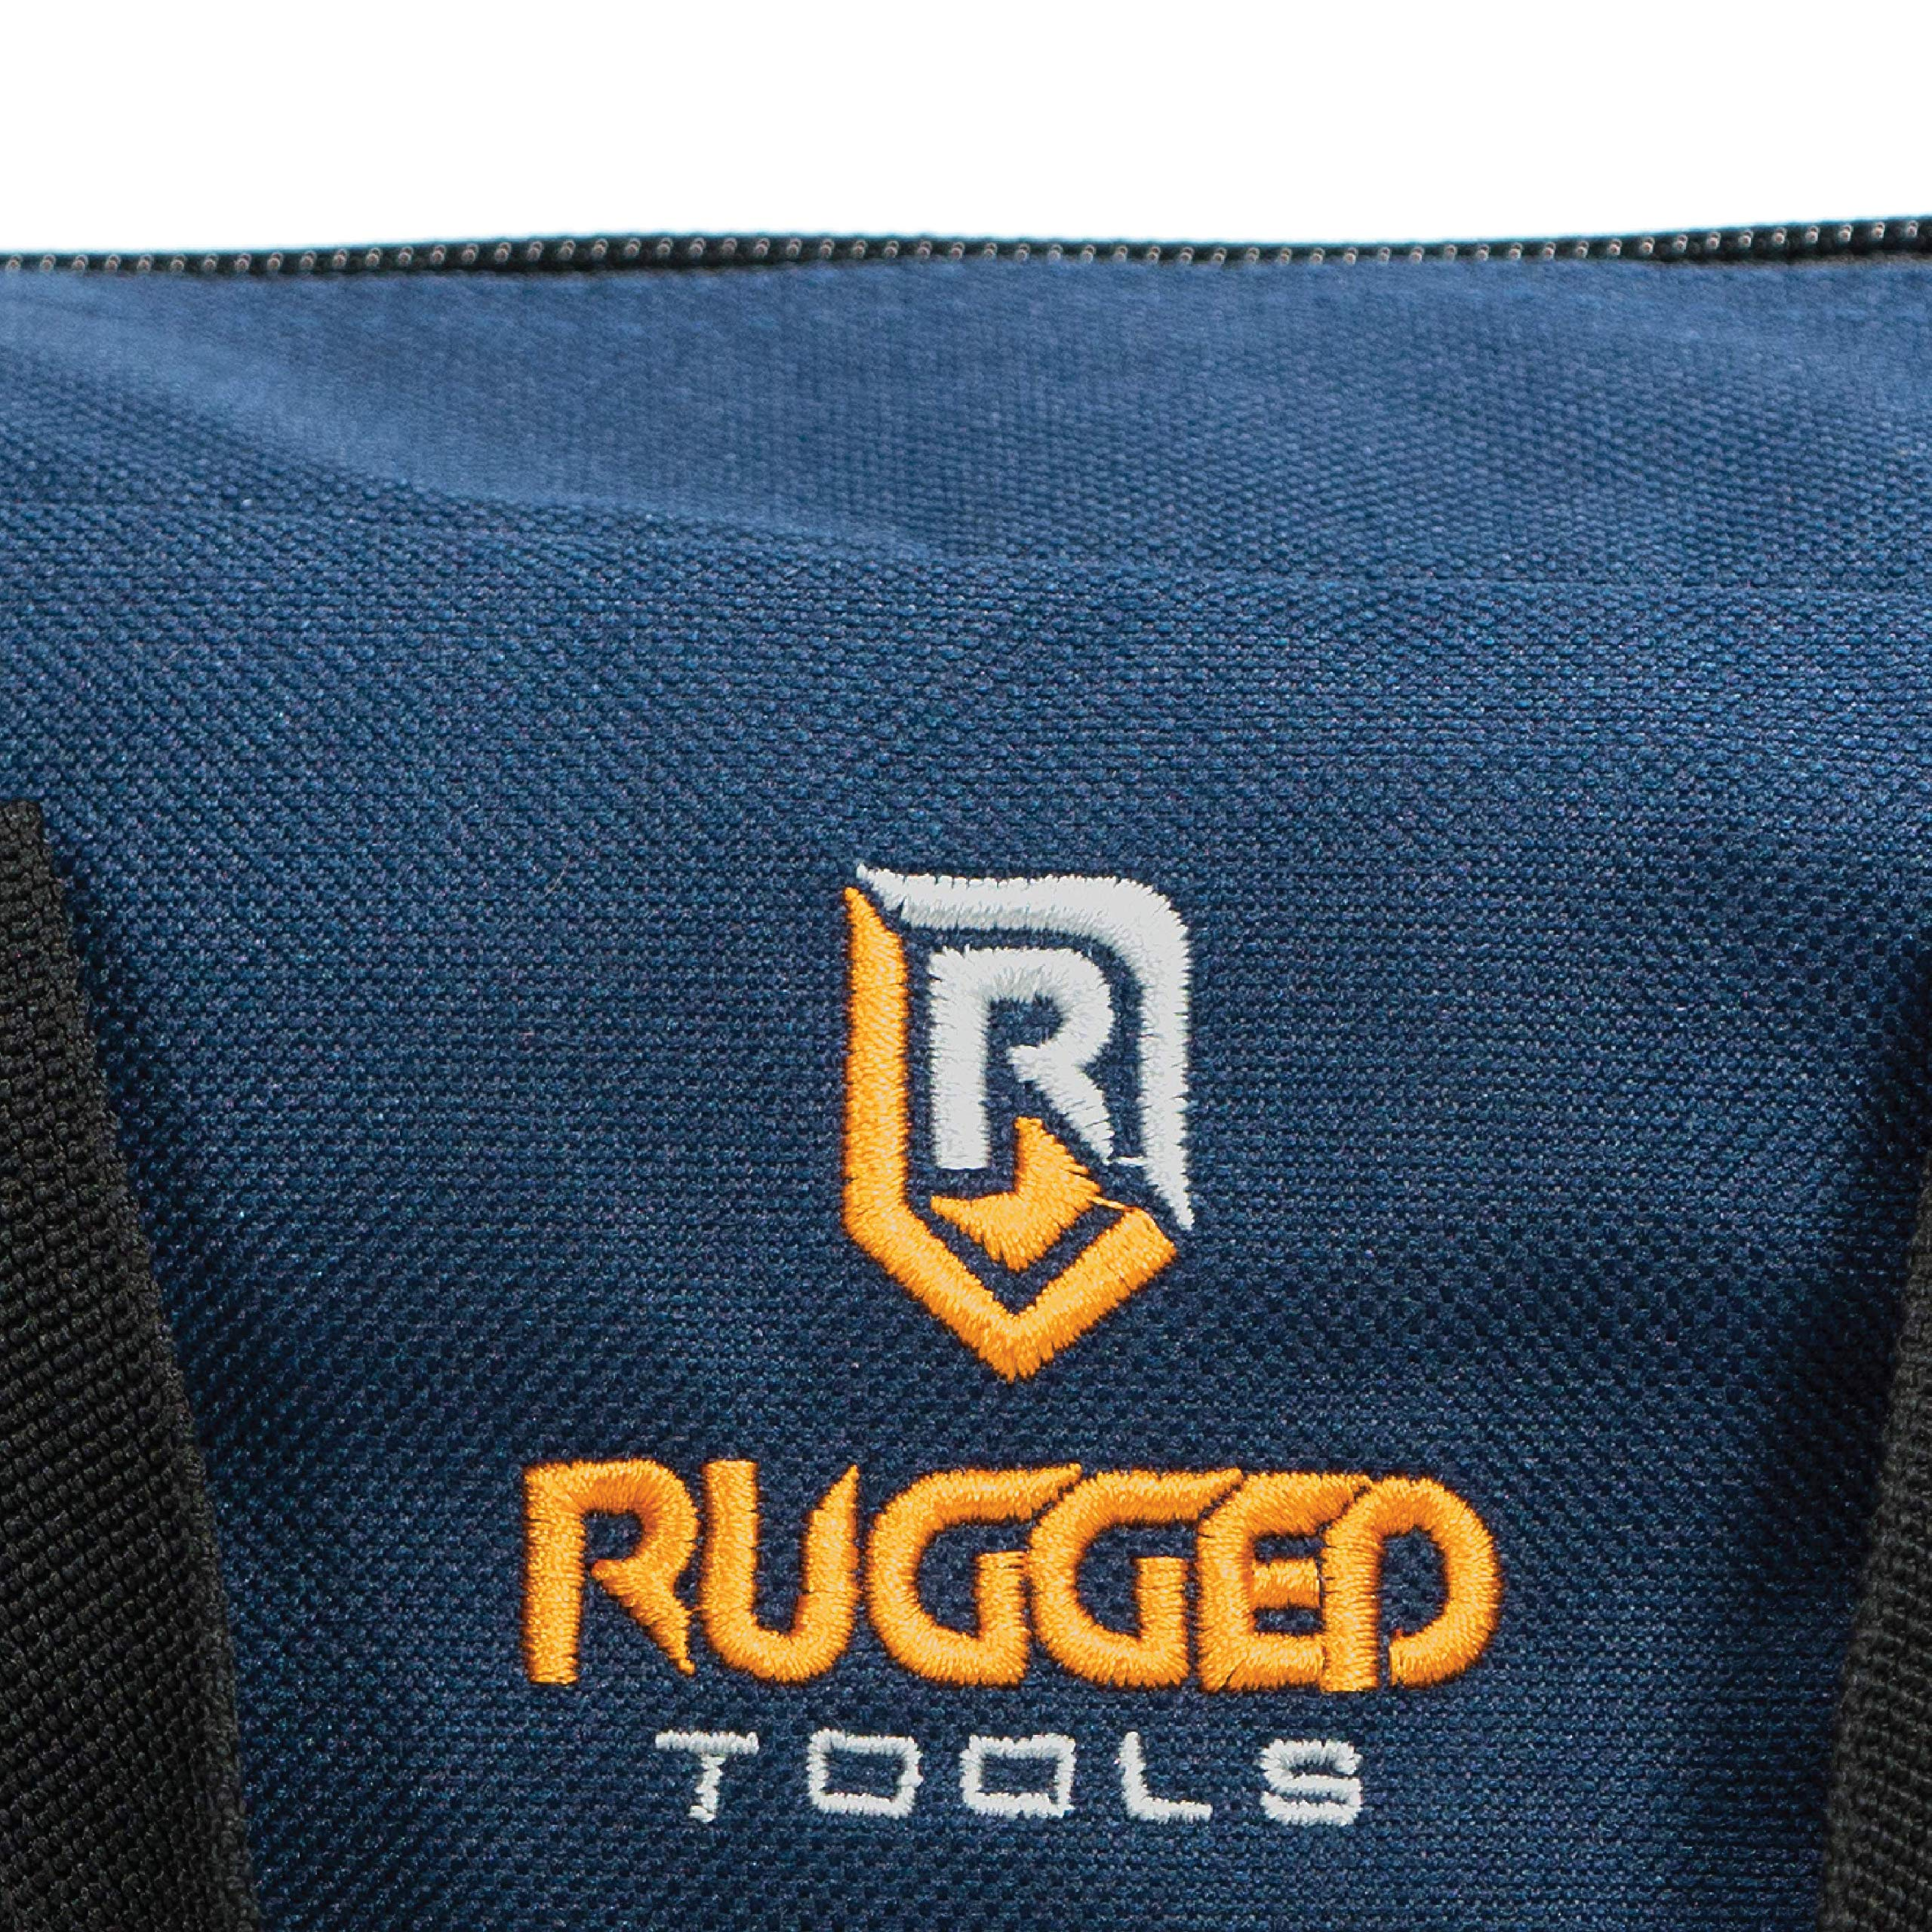 Rugged Tools Tool Bag Combo - Includes 1 Small & 1 Medium Toolbag - Organizer Tote Bags for Electrician, Plumbing, Gardening, HVAC & More by Rugged Tools (Image #8)